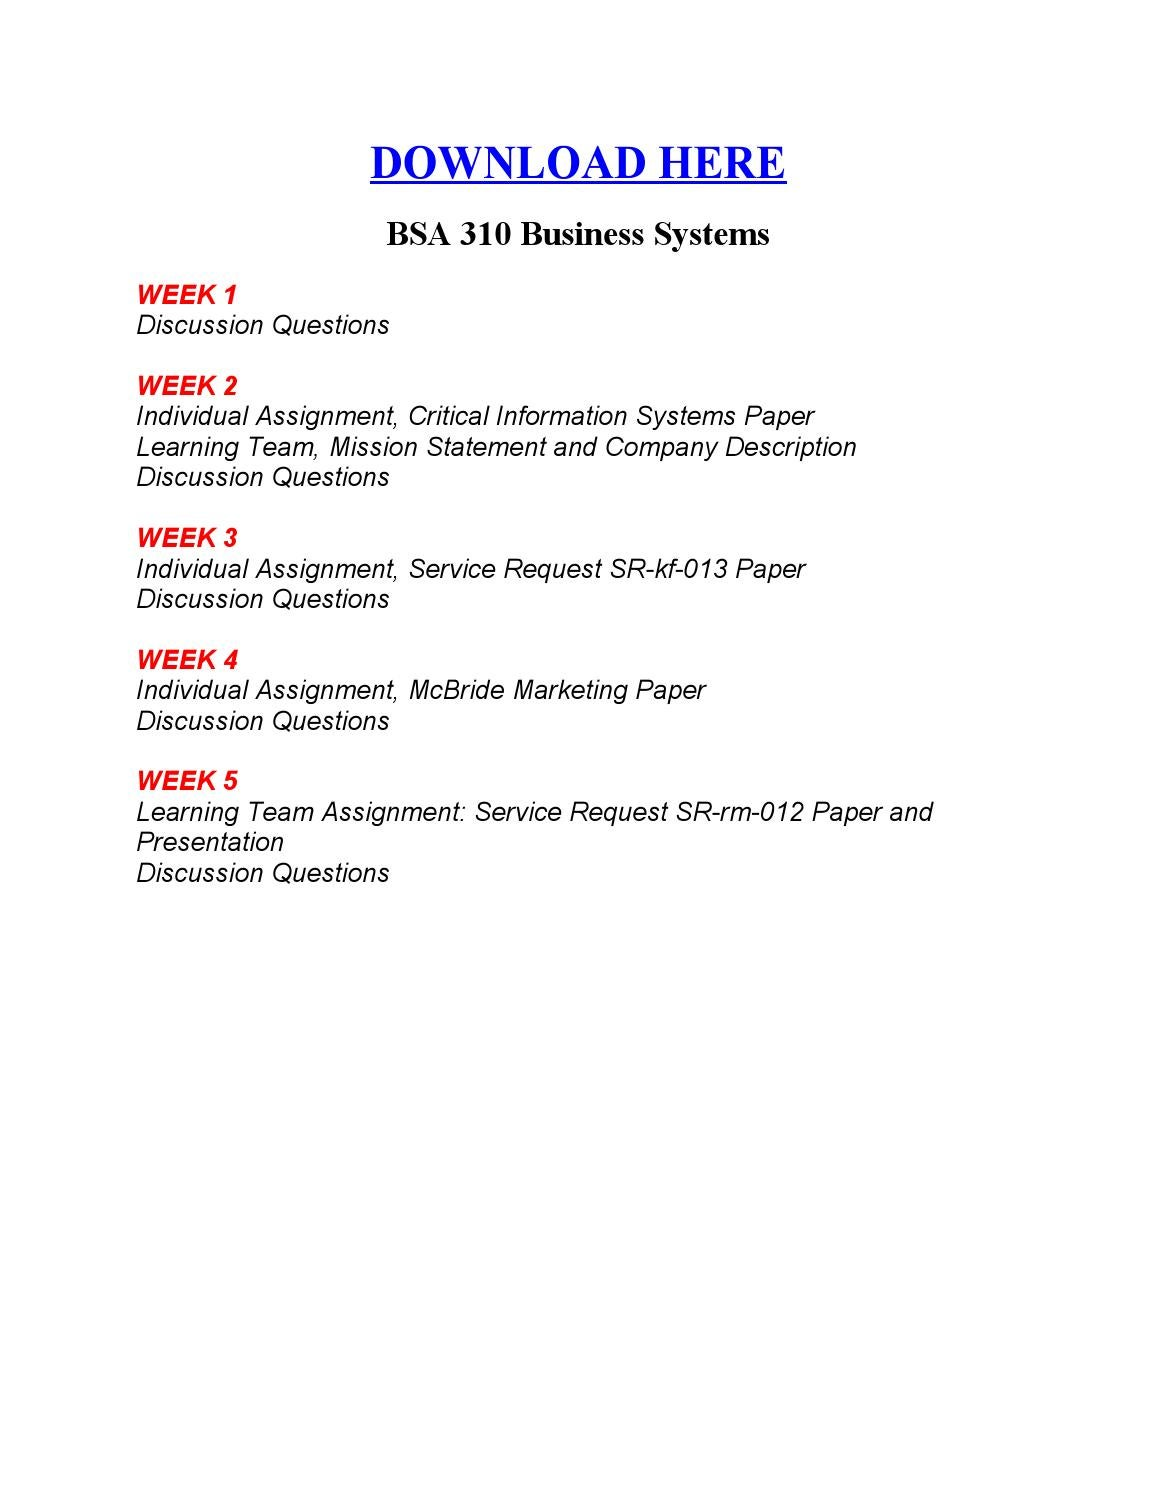 service request sr rm 012 paper and presentation How to create a capstone paper step by step - this presentation is a step by step 2 bsa 310 week 5 team assignment service request sr-rm-012 paper and.